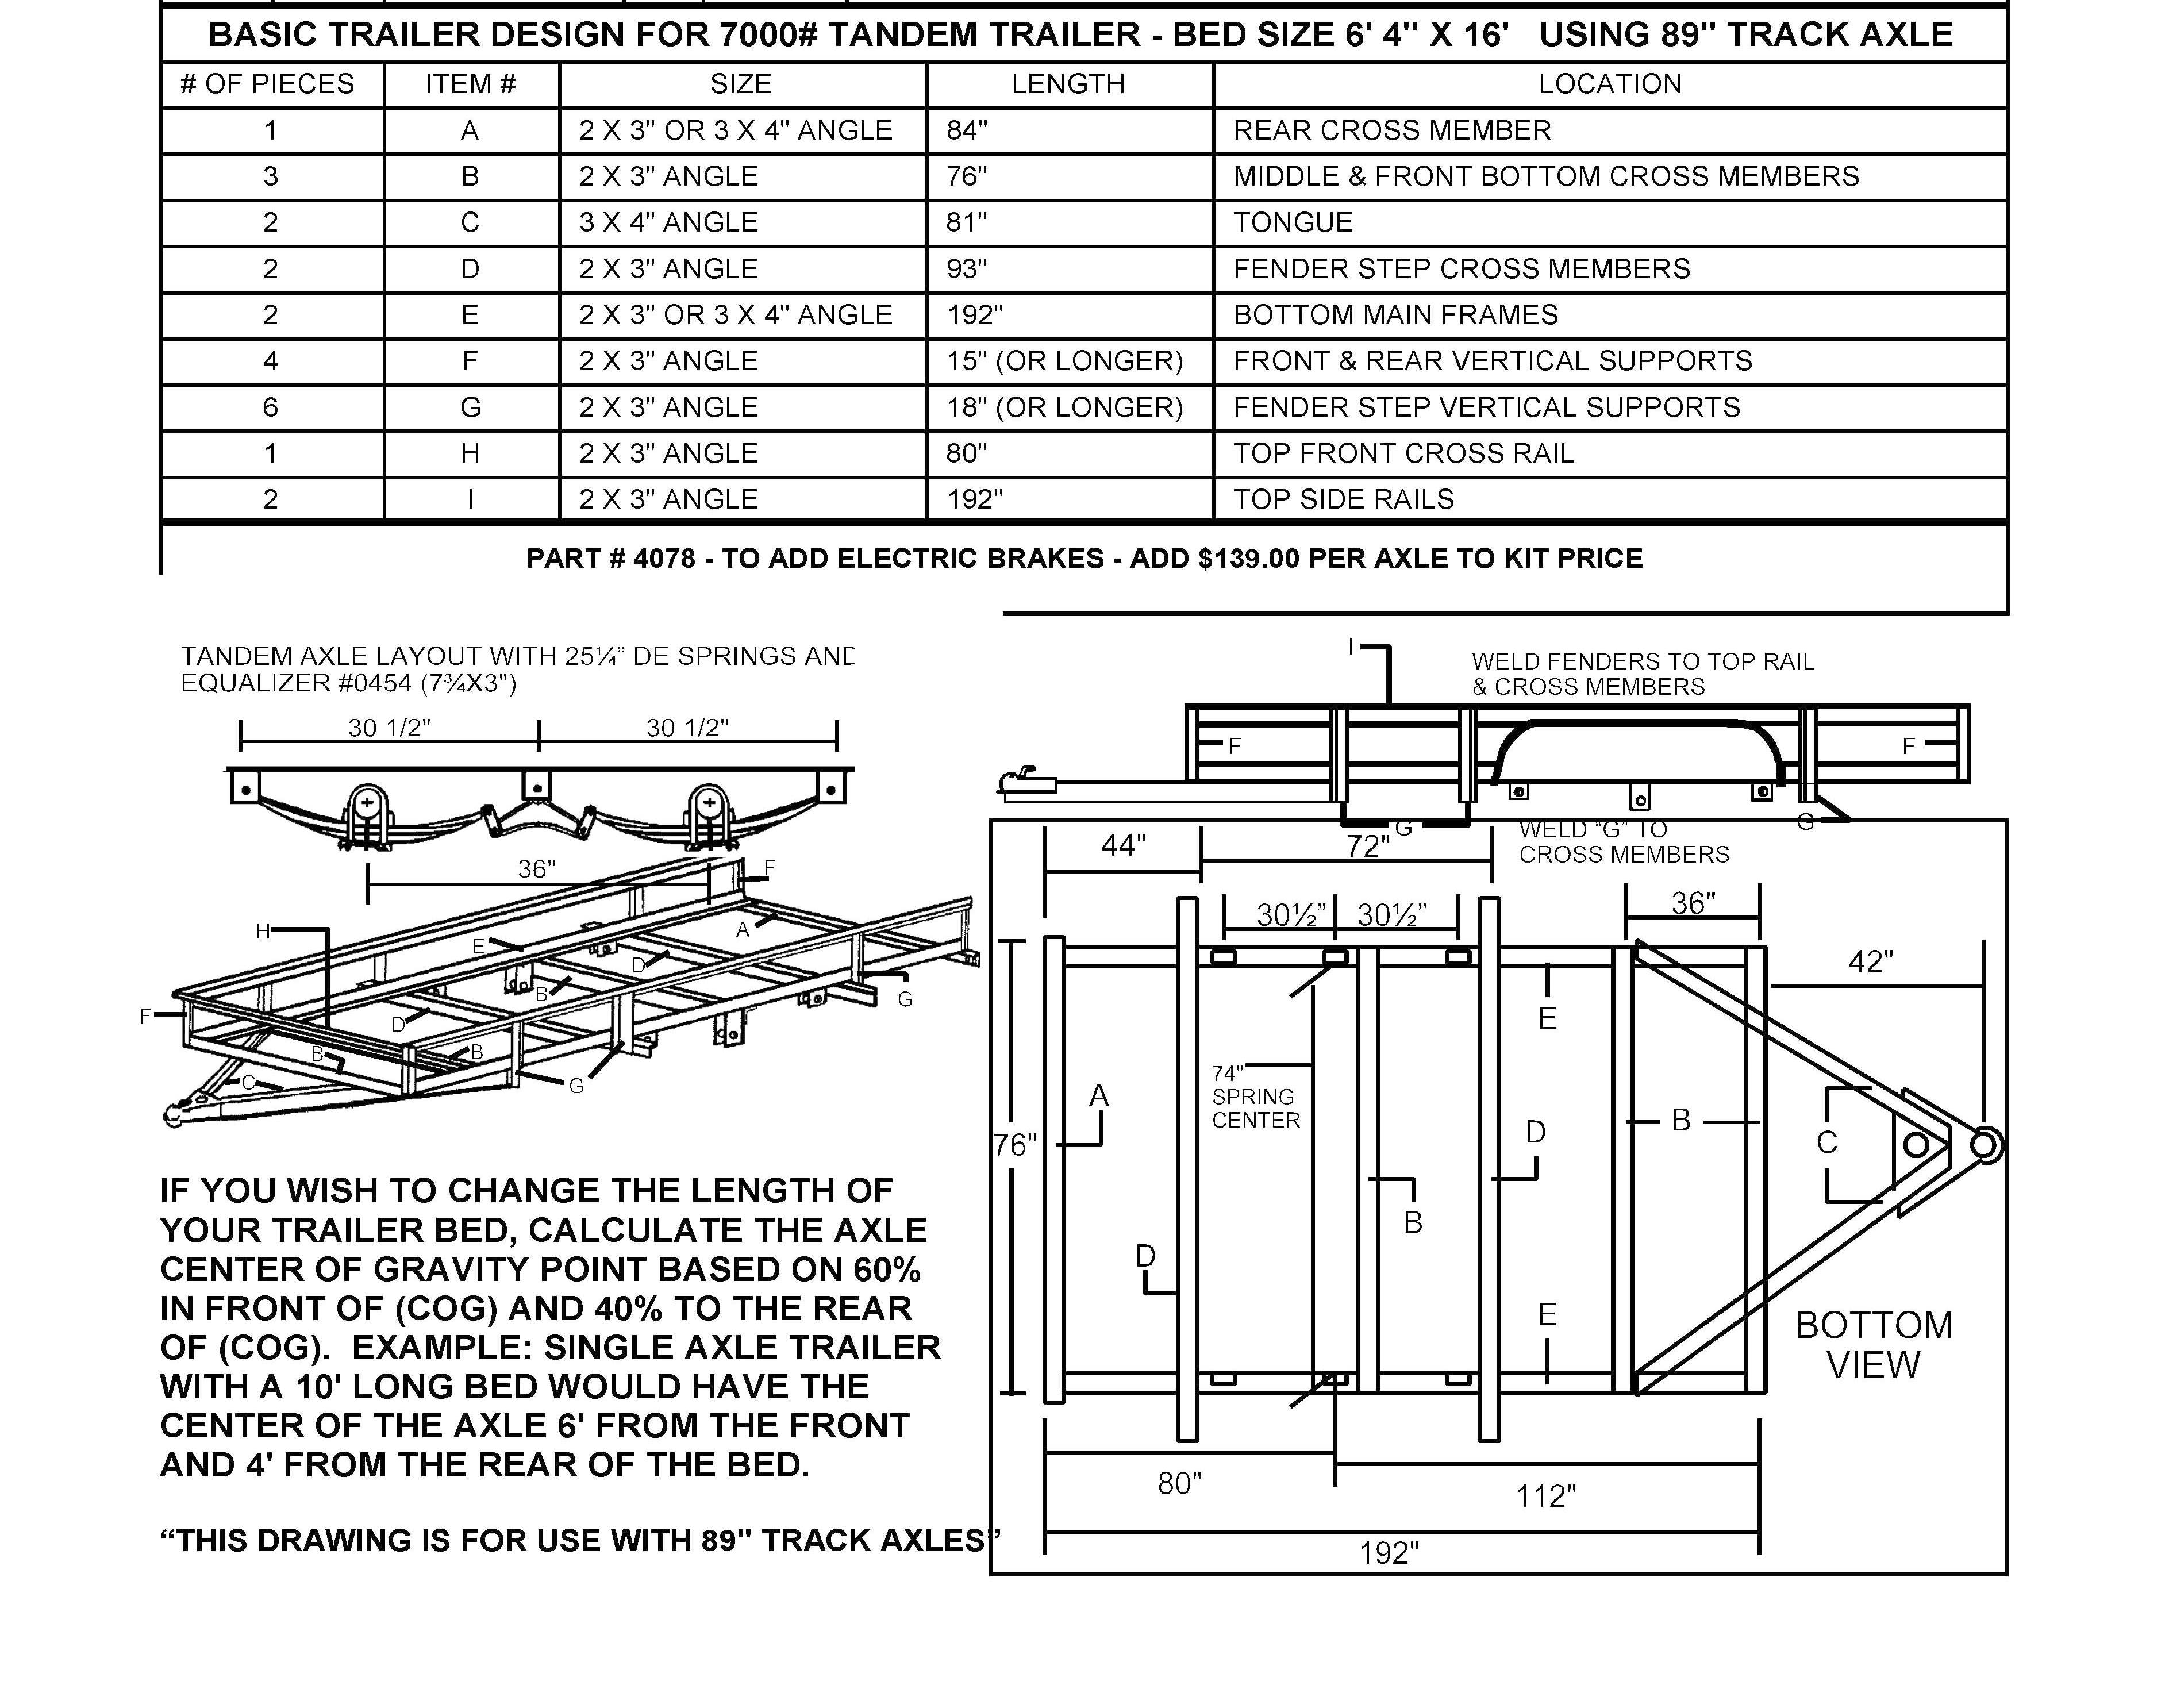 Build Your Own Utility Trailer With Champion Trailers Tandem Schematic Parts Kit Building Diagram